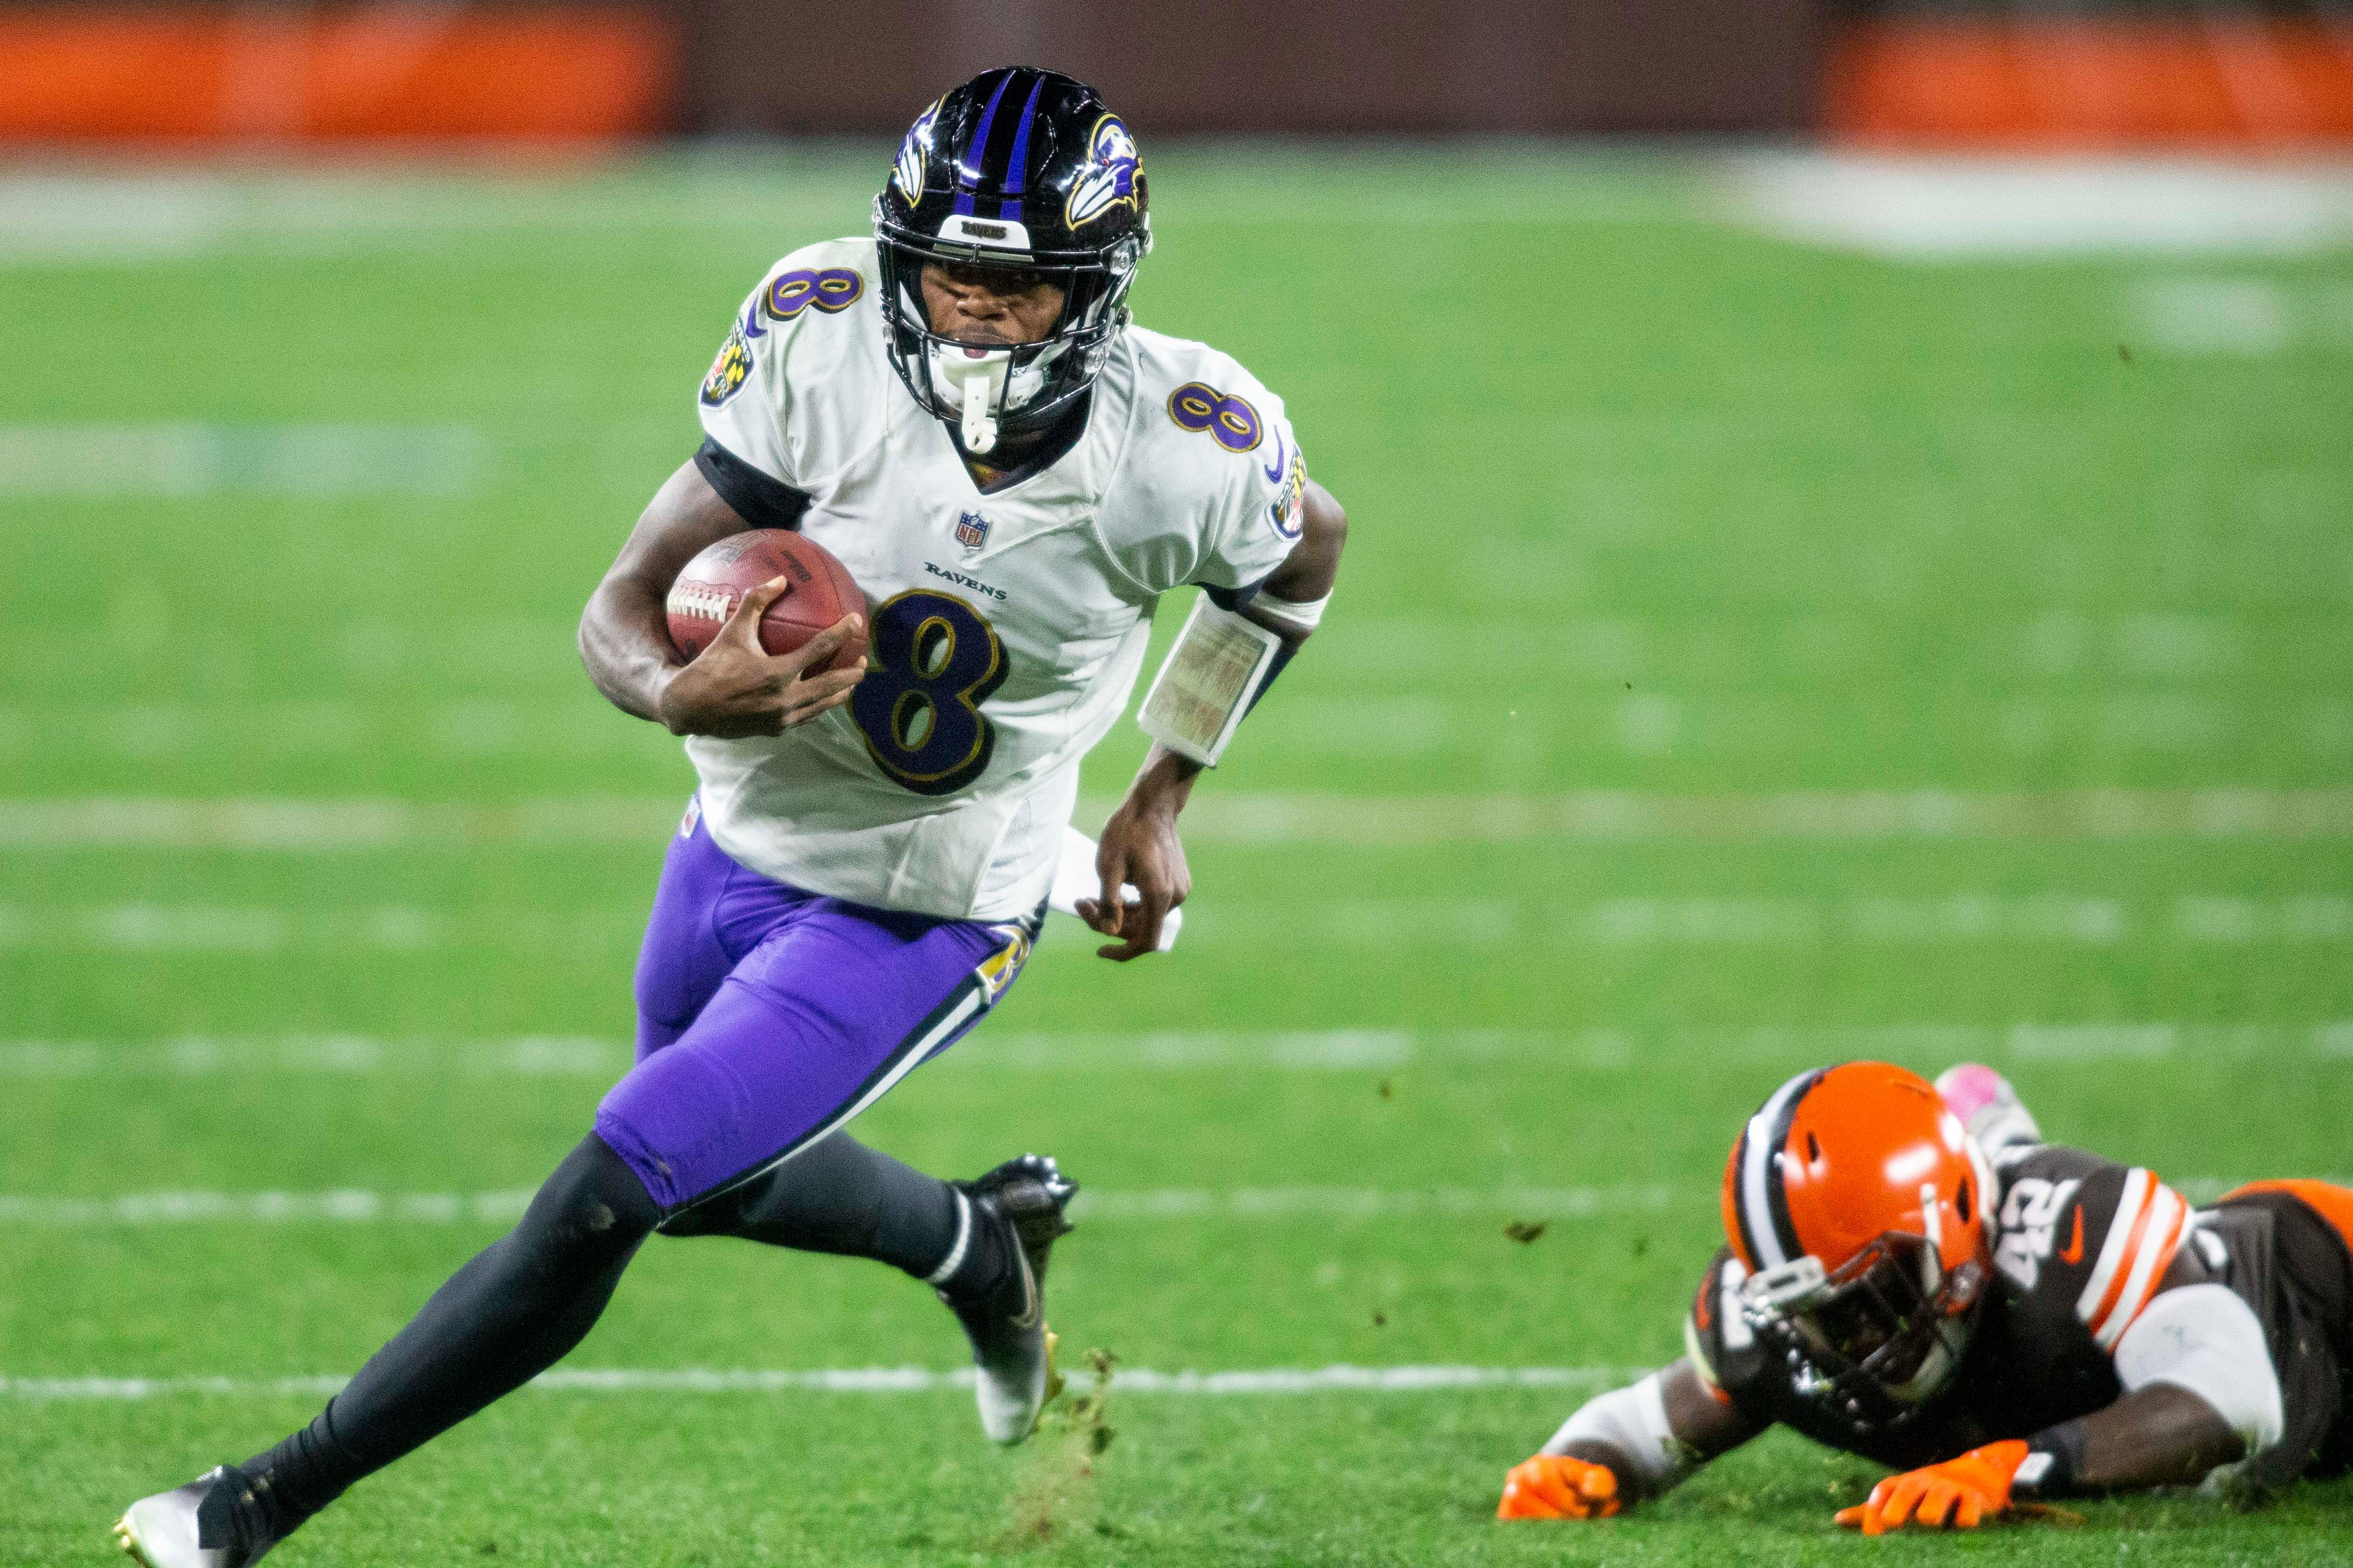 Opinion: 'This was crazy':  Lamar Jackson comes out of locker room to lead Ravens past Browns in final seconds